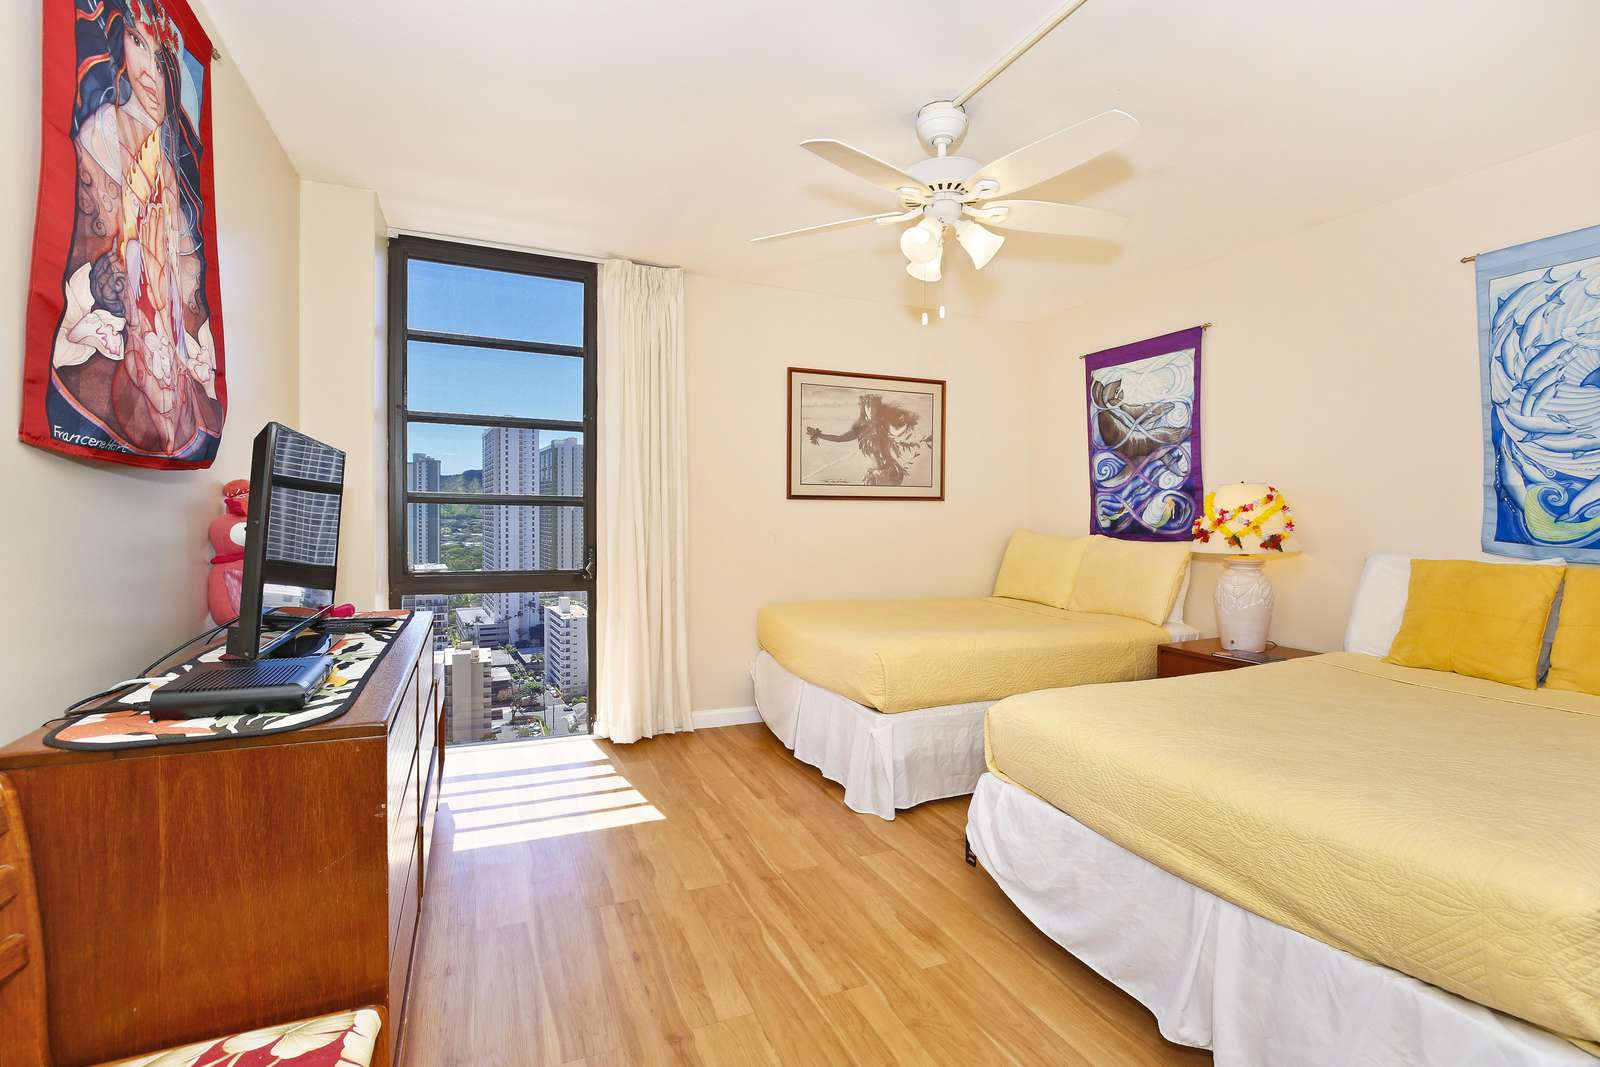 2 Double beds in the bedroom & HD TV with cable